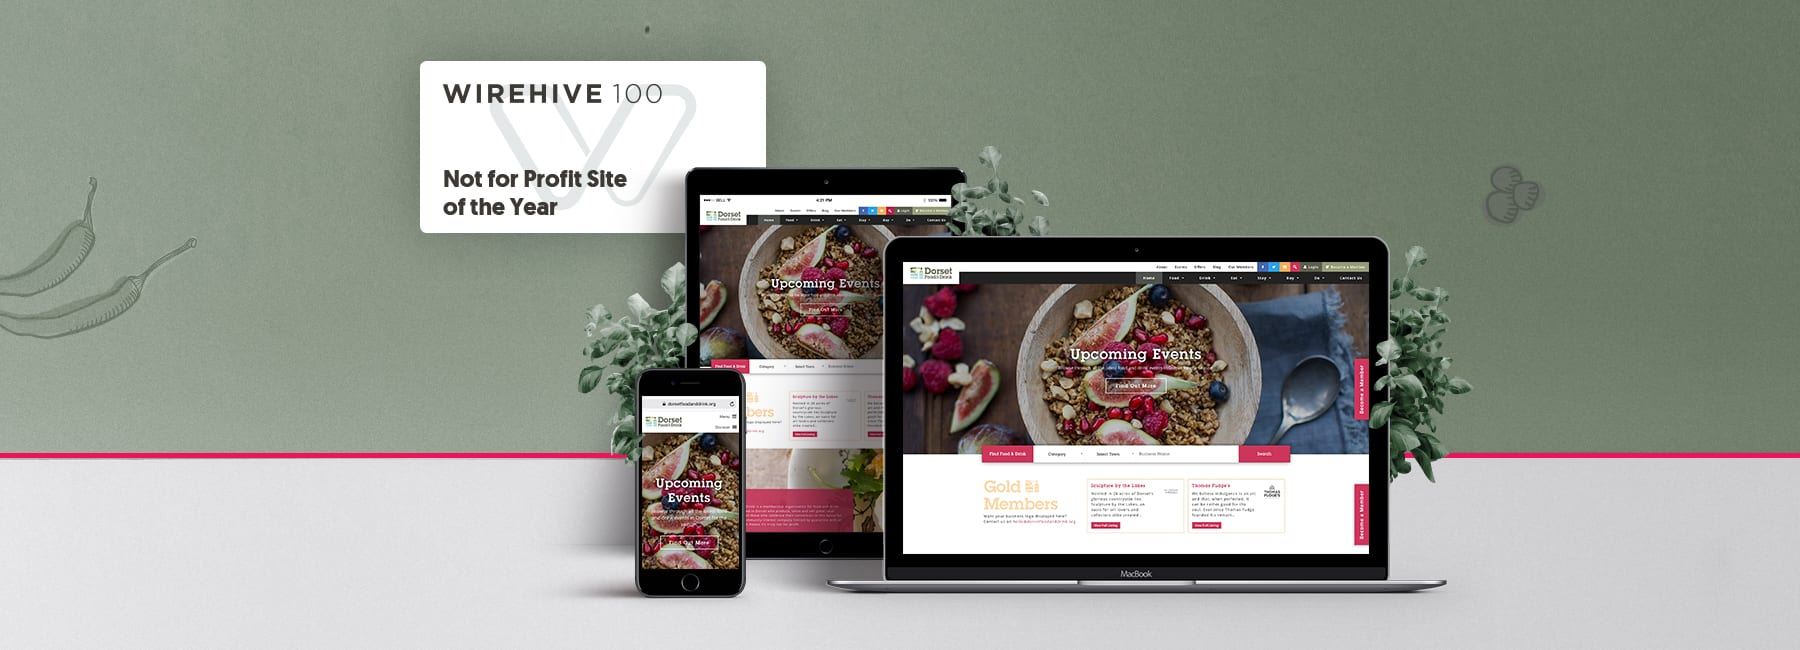 Award winning digital agency, wirehive 100 award for not-for-profit website of 2018